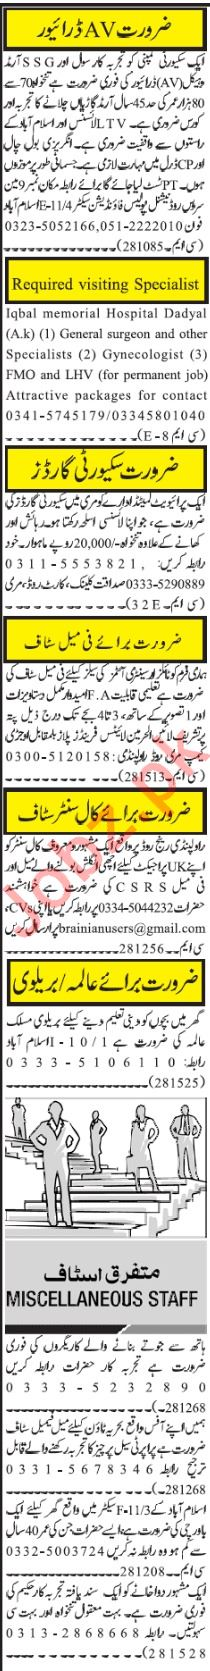 Daily Jang Classified Ads 2018 2019 Job Advertisement Pakistan